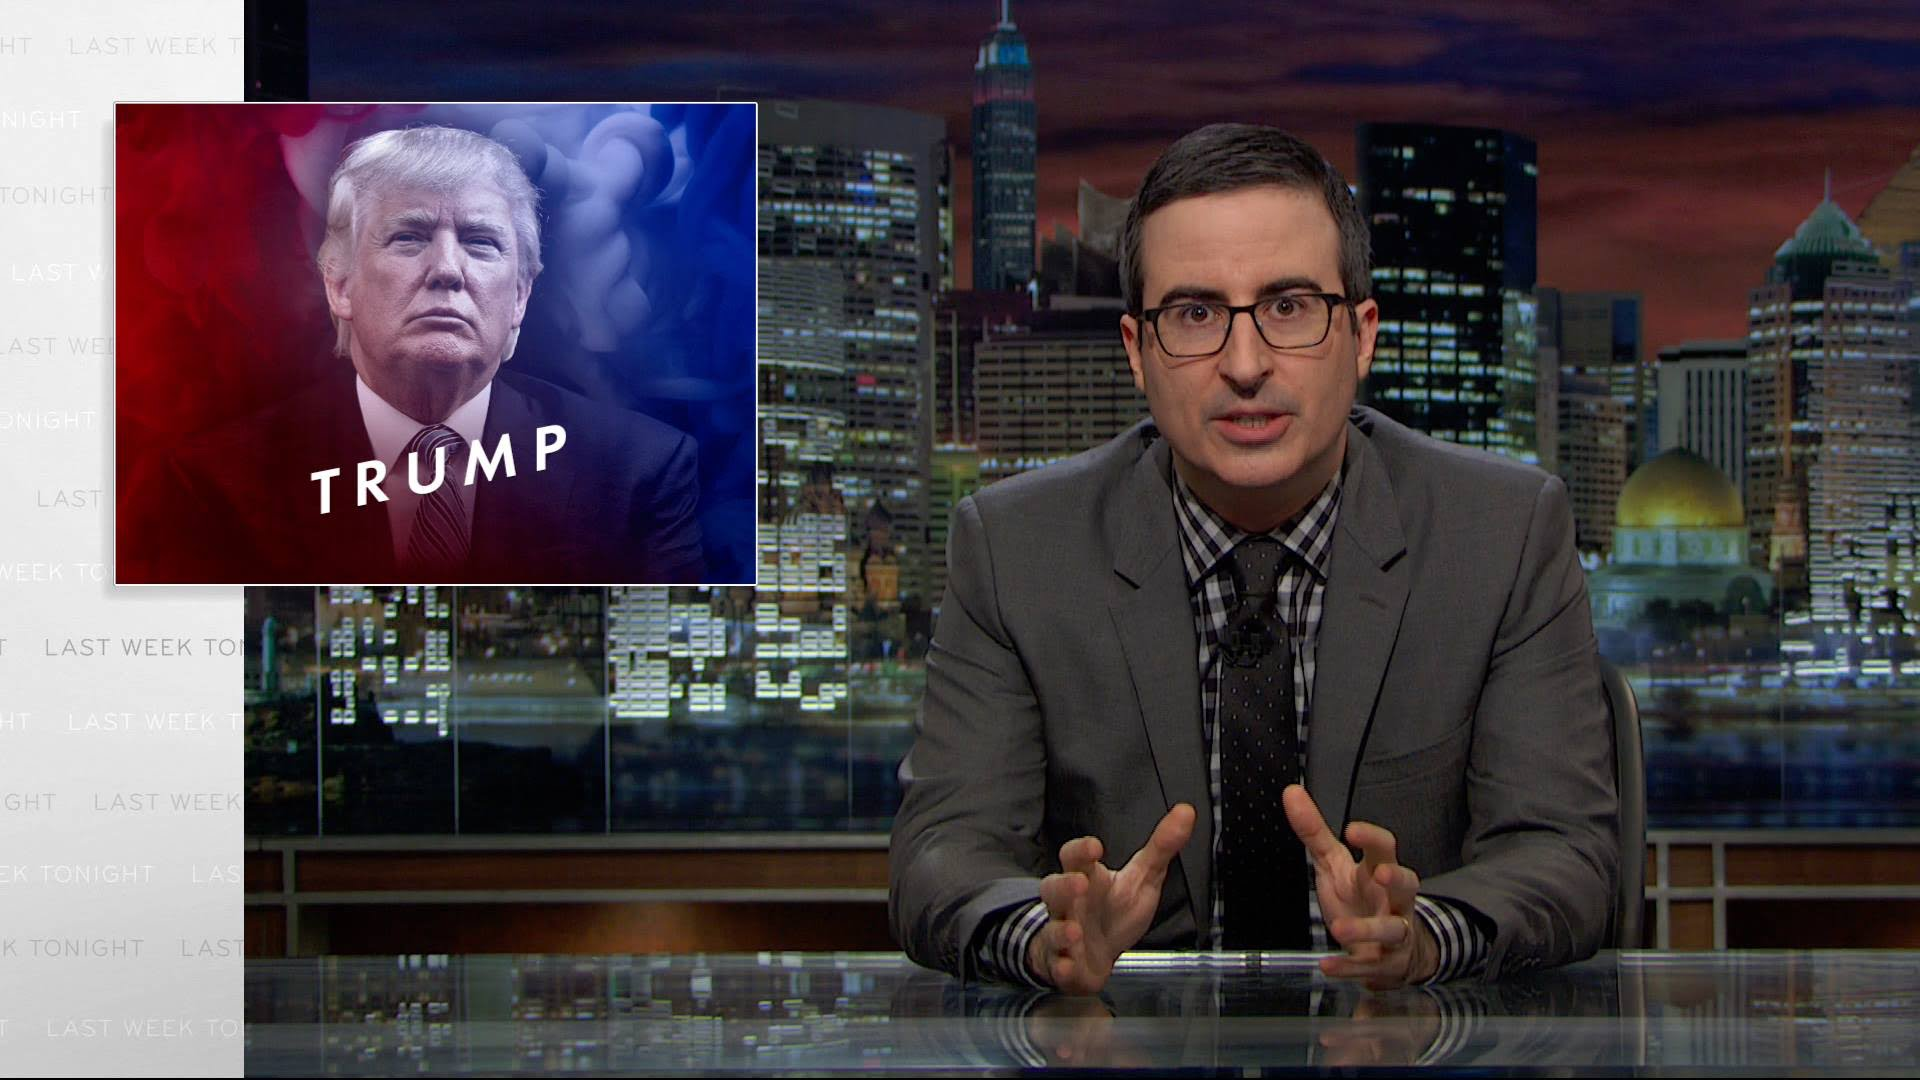 Donald Trump – Delegitimize the Media, Whataboutism, Trolling – John Oliver on Last Week Tonight